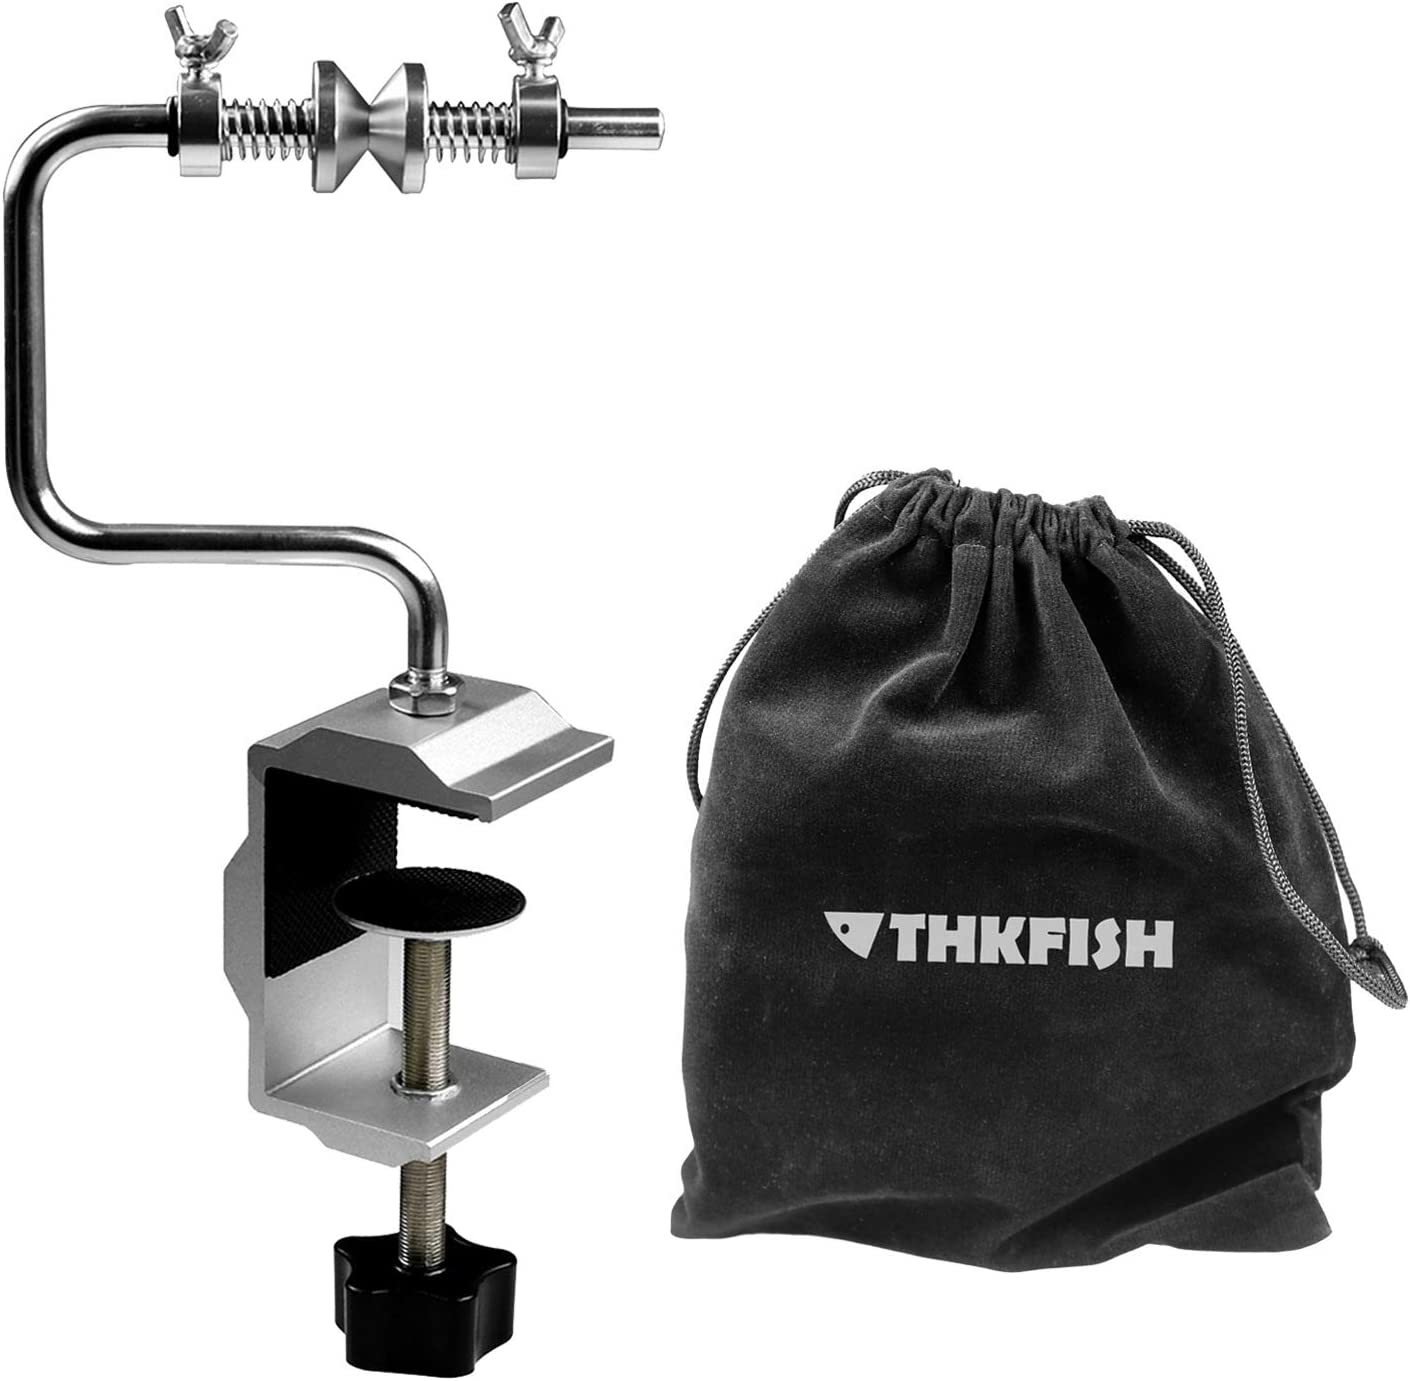 thkfish Fishing Line Winder Fishing Line Spooler System Adjustable Stable Protable Fishing Line Spooler Fishing Line Winder with Clamp Spooler System